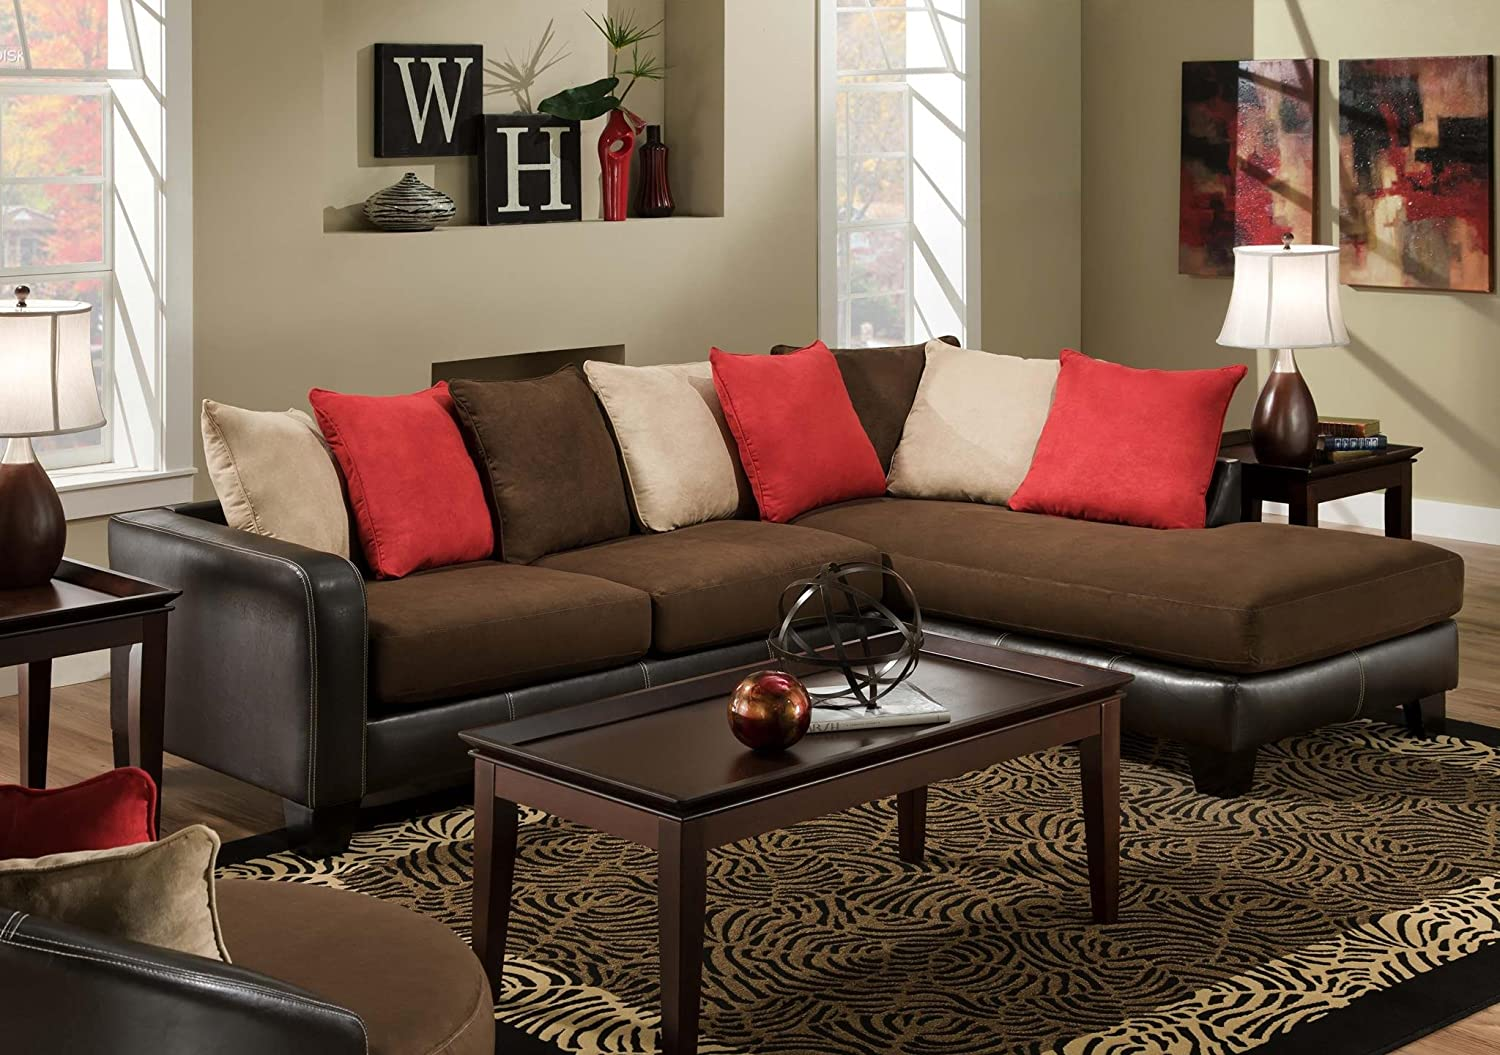 Chelsea Home Furniture Logan 2-Piece Sectional - Sienna Red Rock/Sienna Buff/Sienna Chocolate/San Marino Mocha